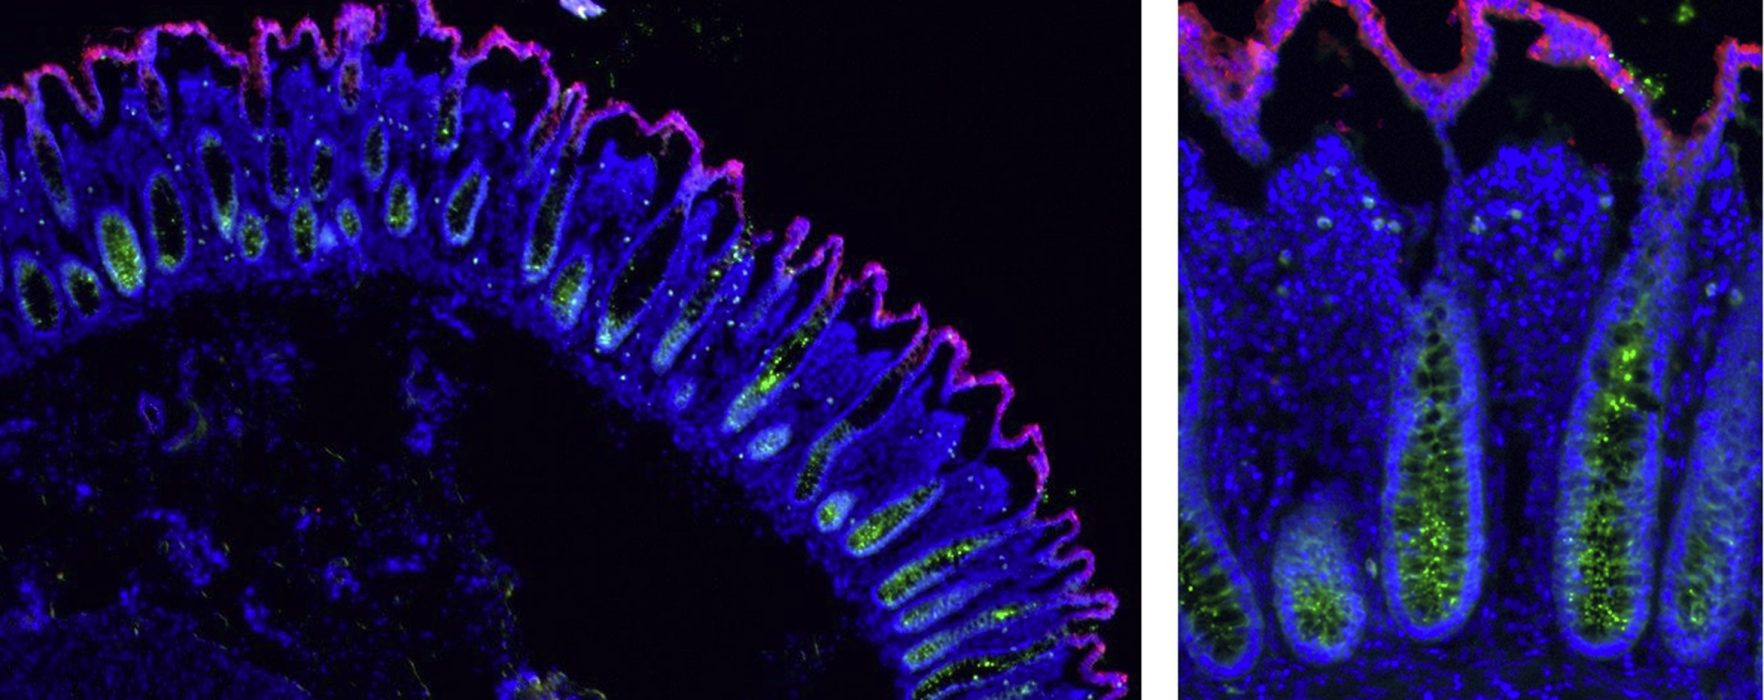 Model: Microfabricated Crypt Scaffolds for Studying Human Colon Stem Cells